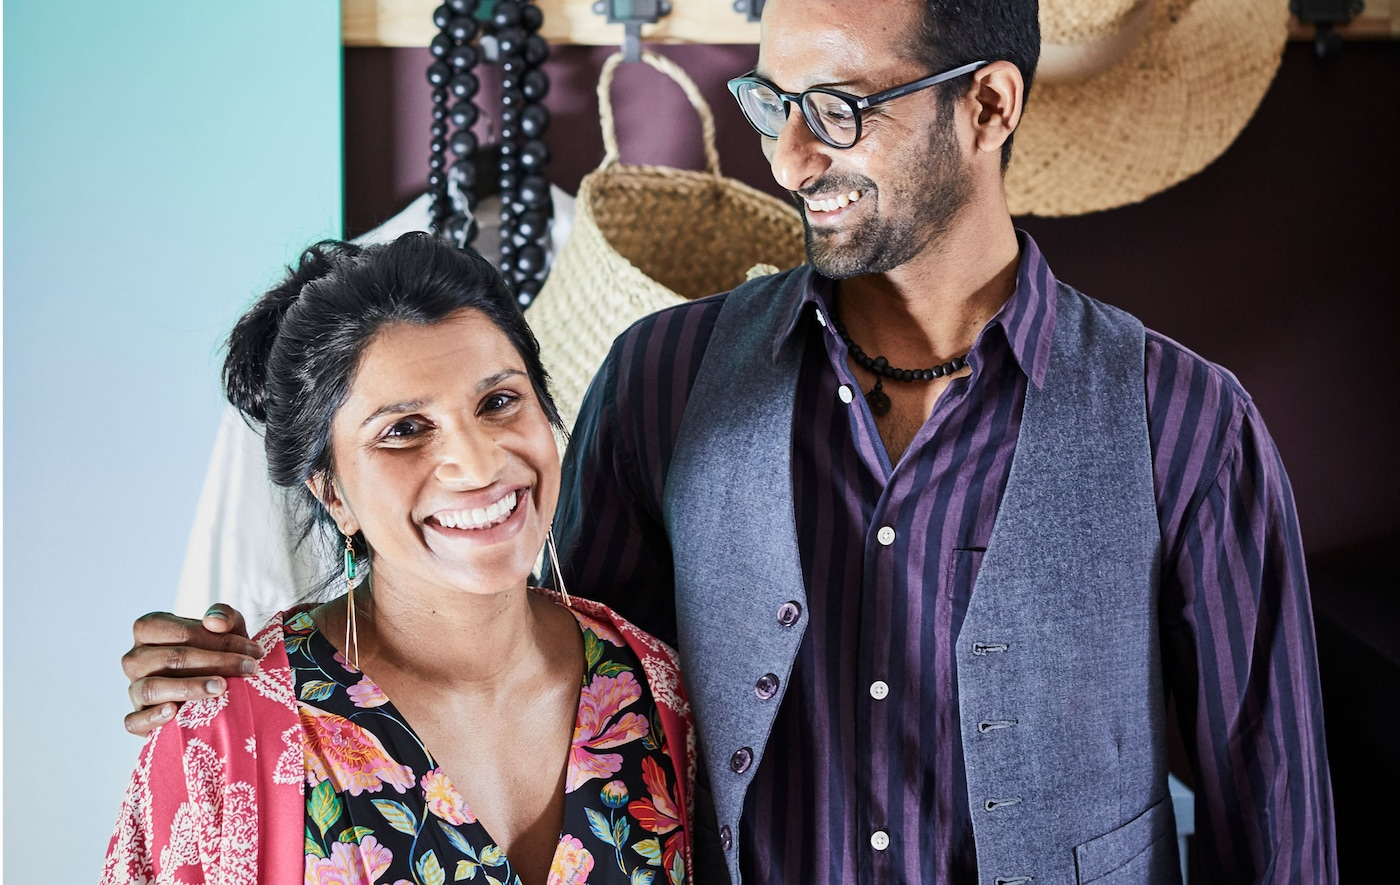 Smiling, thirty-something woman and man standing affectionately together; clothing and accessories on a rack behind them.